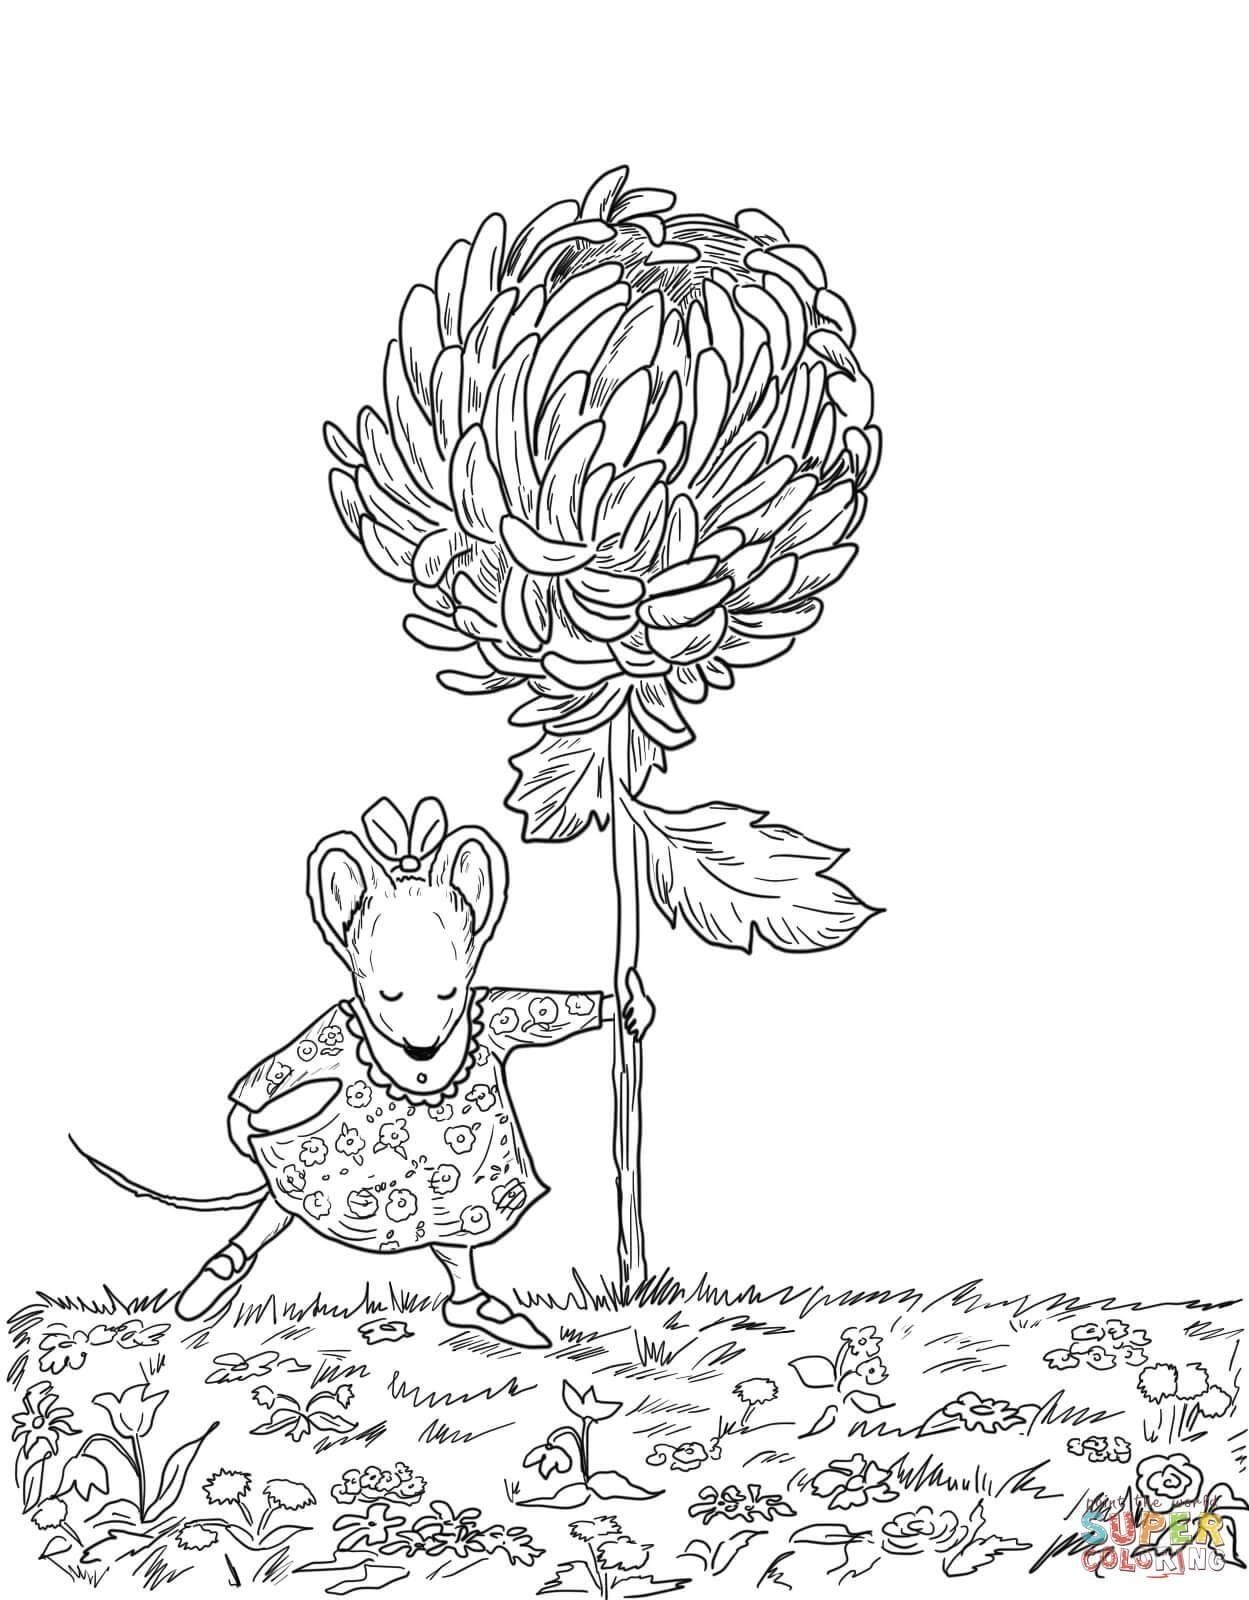 Chrysanthemum Coloring Pages Kevin Henkes To Print Kindergarten Coloring Pages Coloring Pages Free Coloring Pages